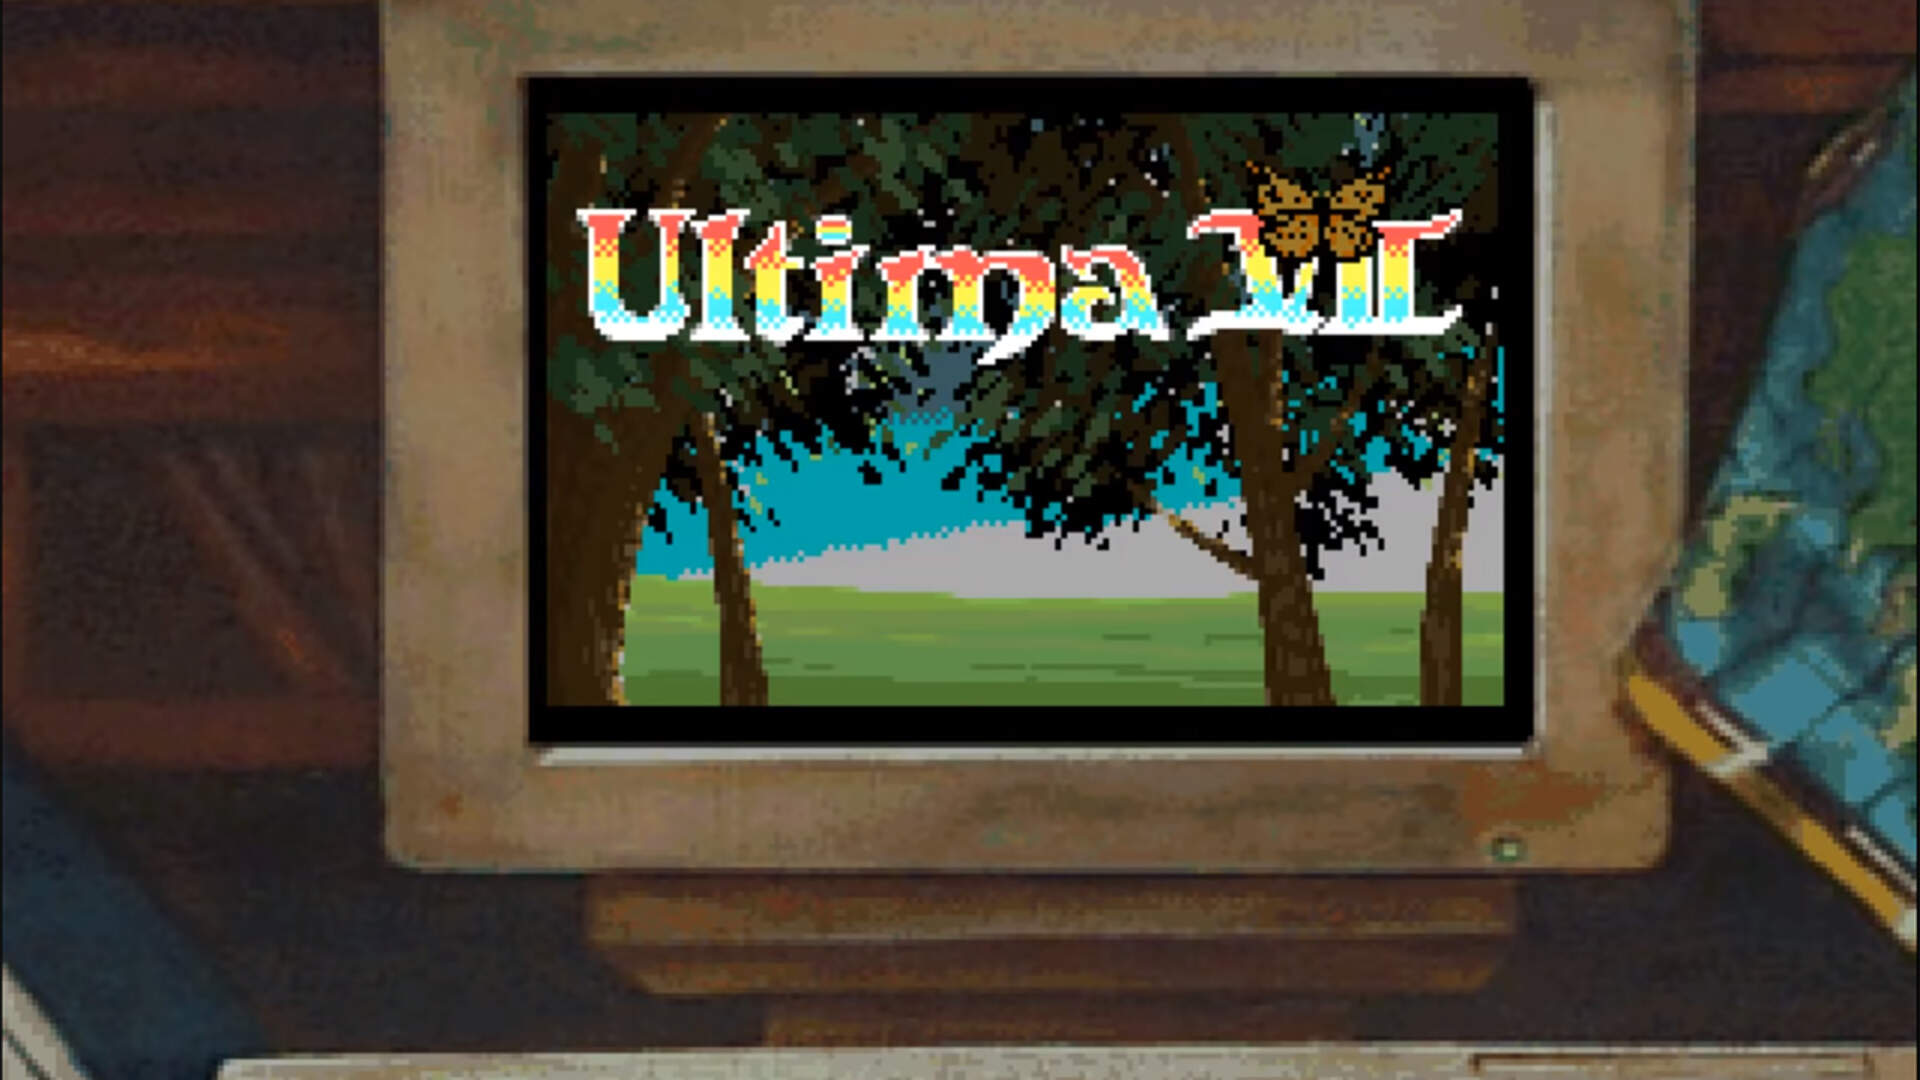 The Top 25 RPGs of All Time #6: Ultima 7